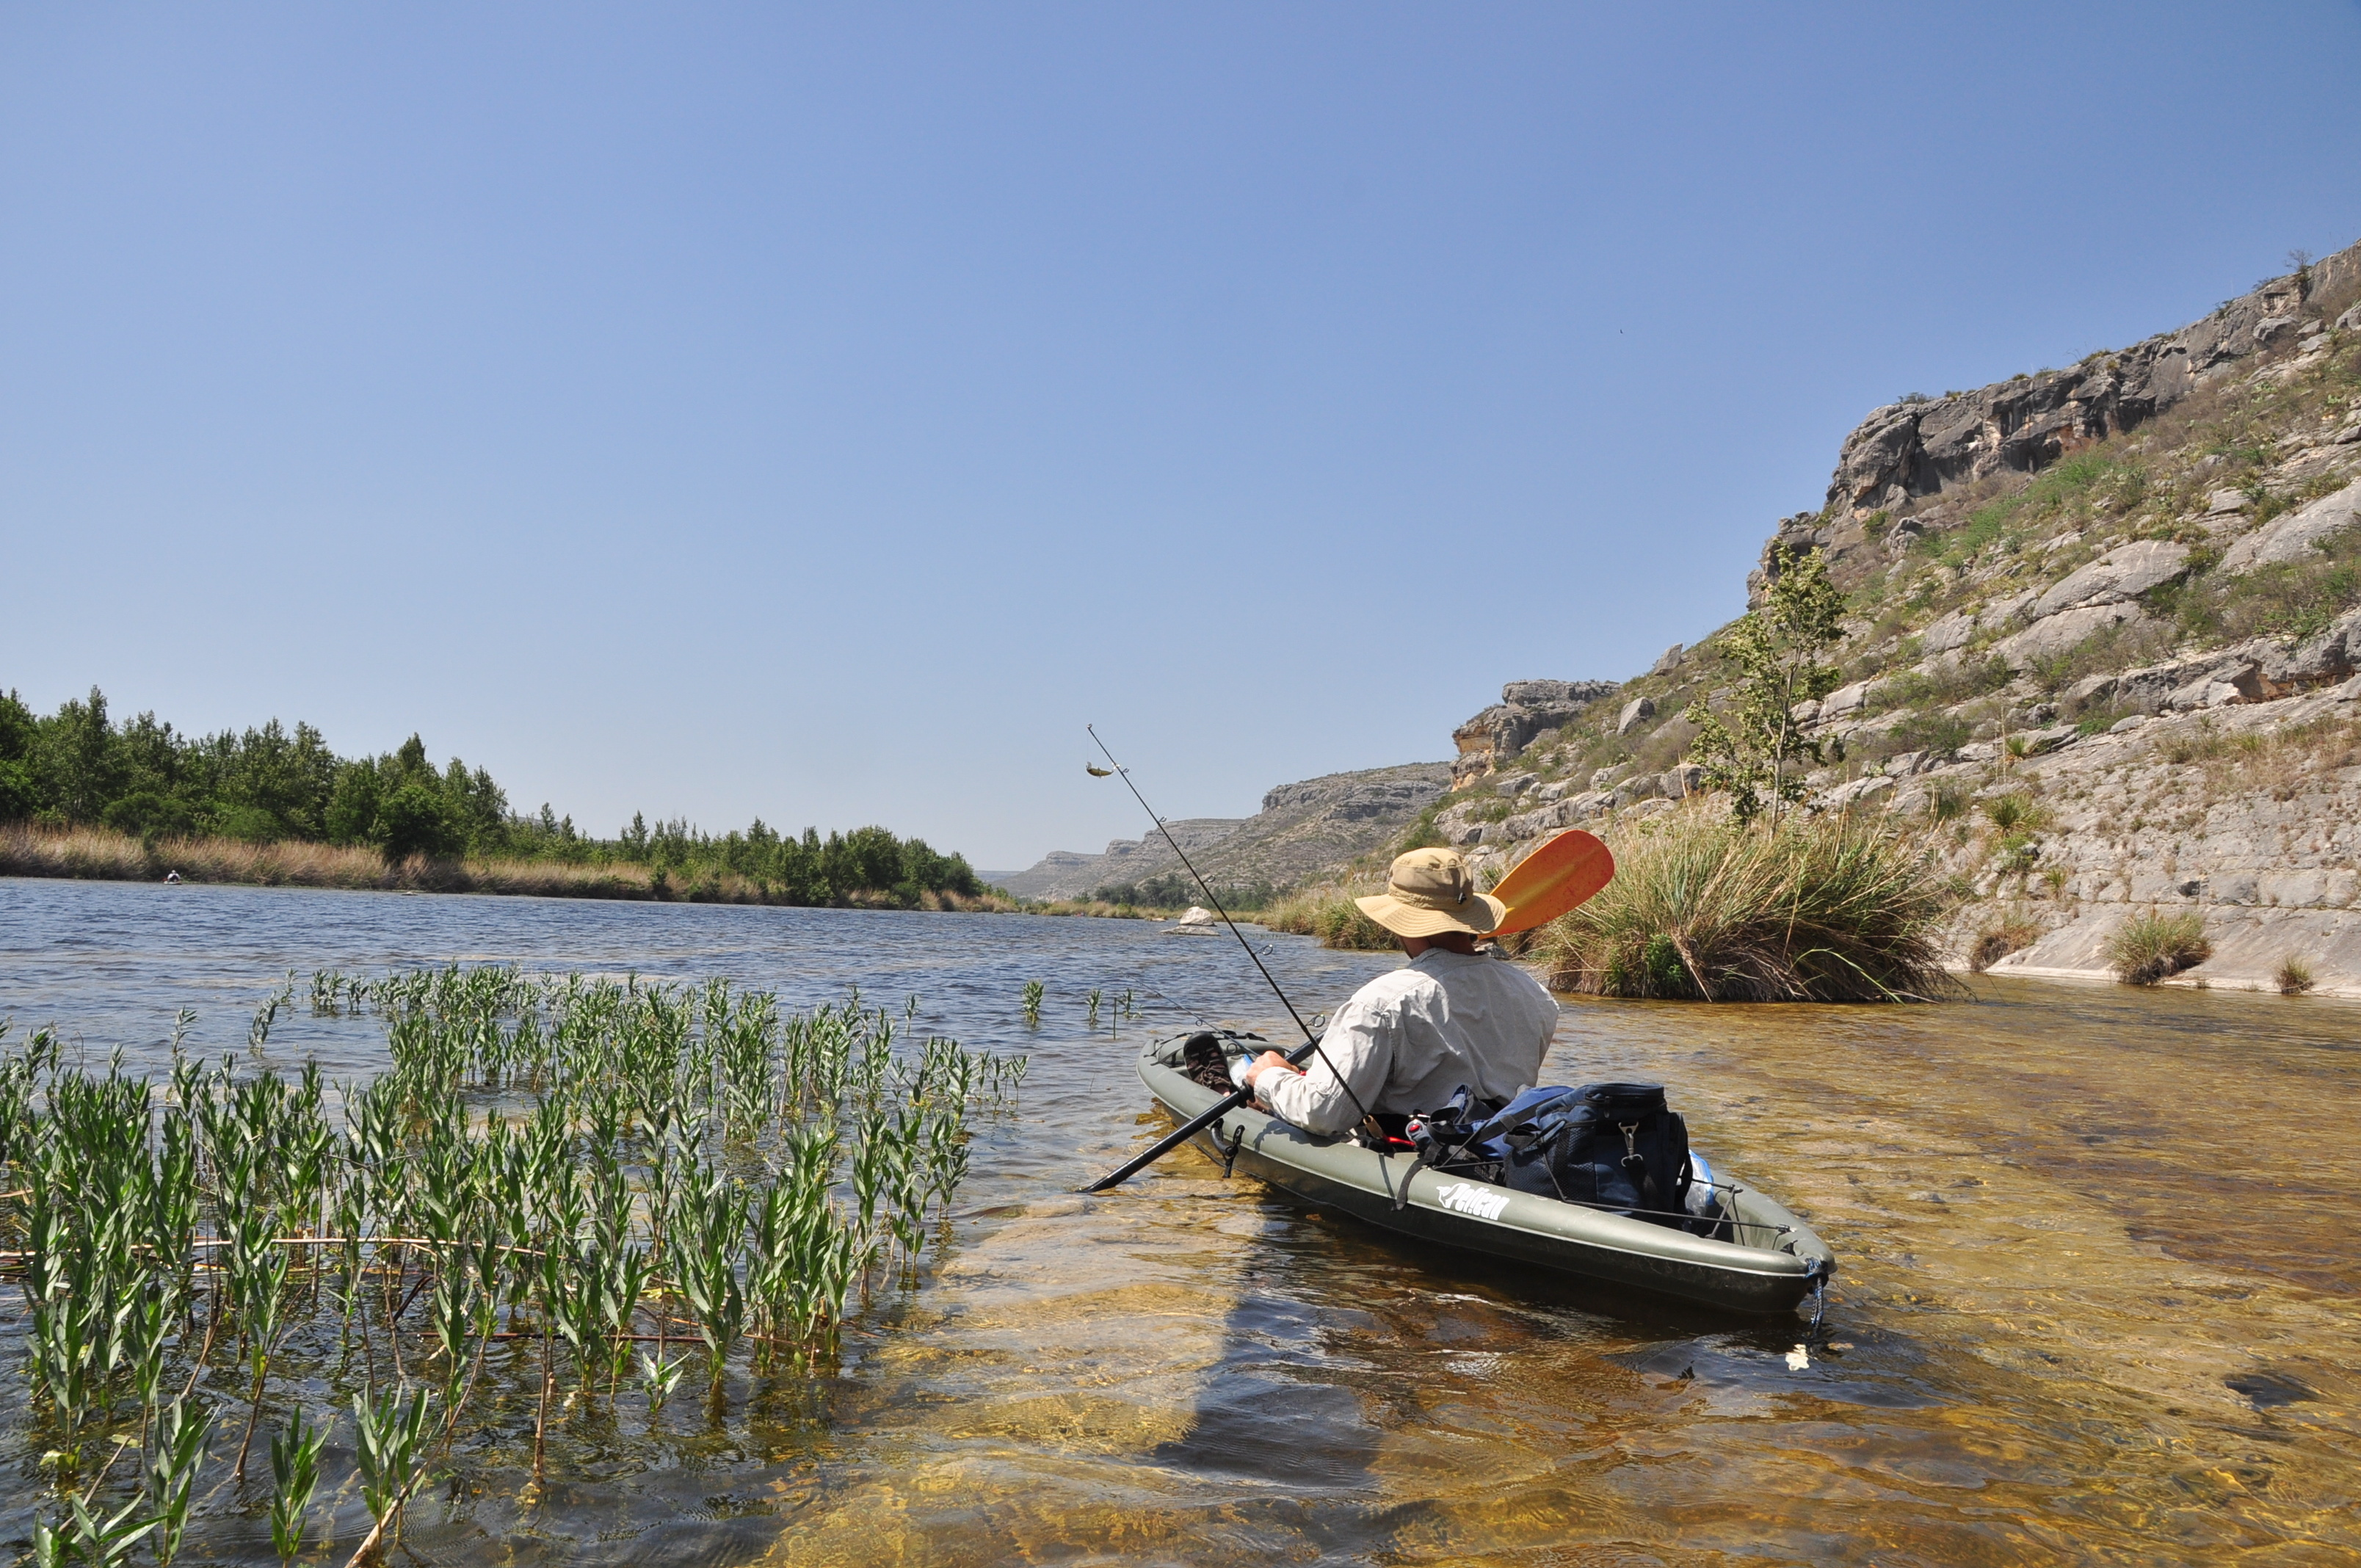 TPWD Announces New Paddler Camp Sites on Iconic Devils River